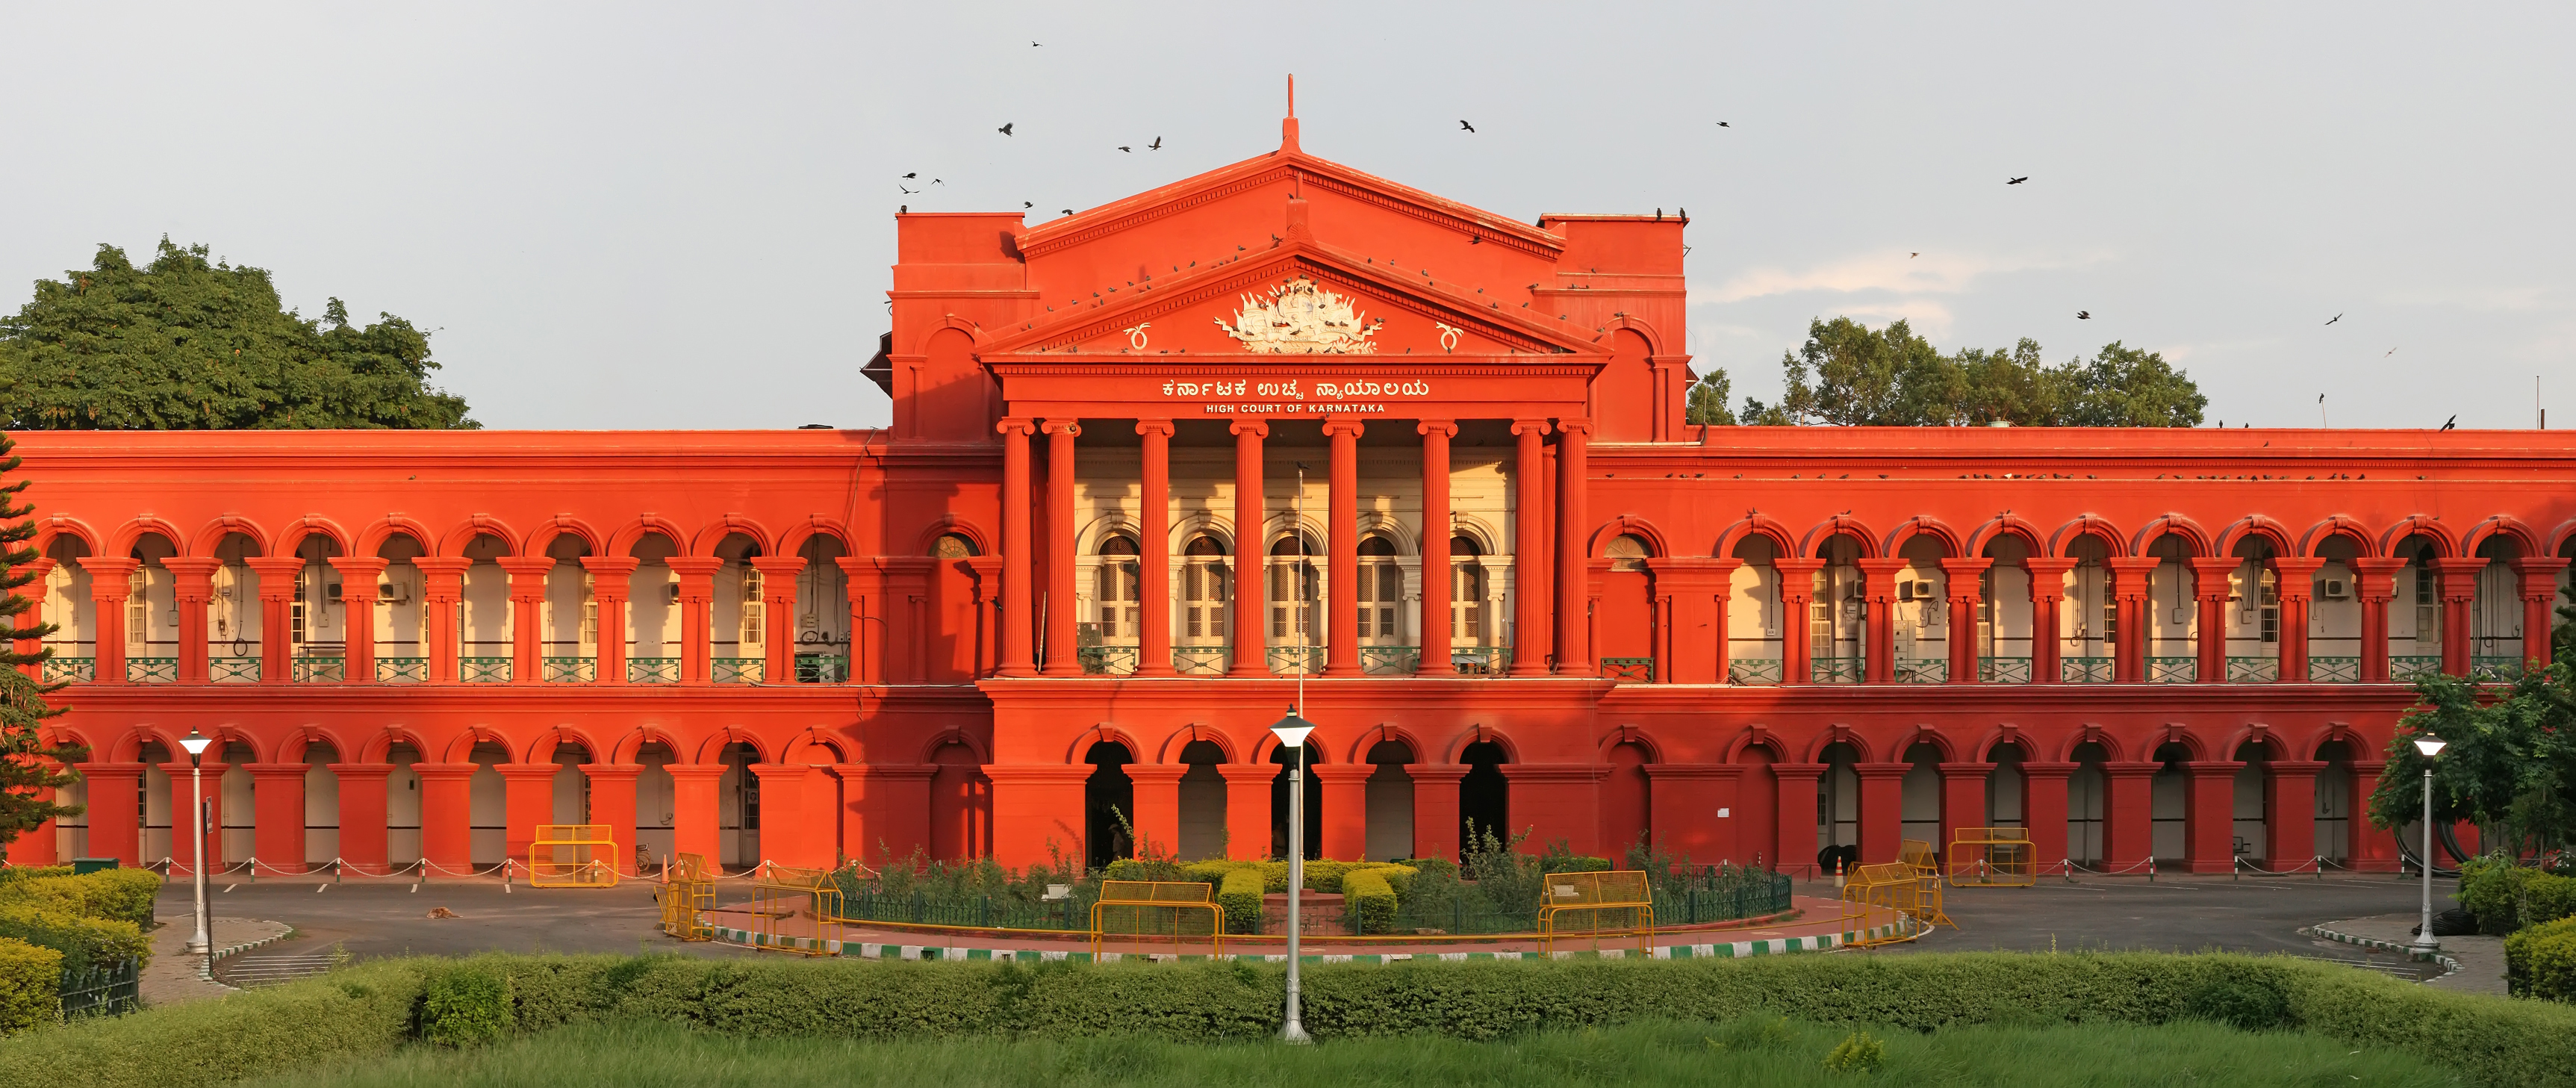 high courts in india There are 24 high courts at the state and union territory level of india, which together with the supreme court of india at the national level, comprise the country's judicial system.